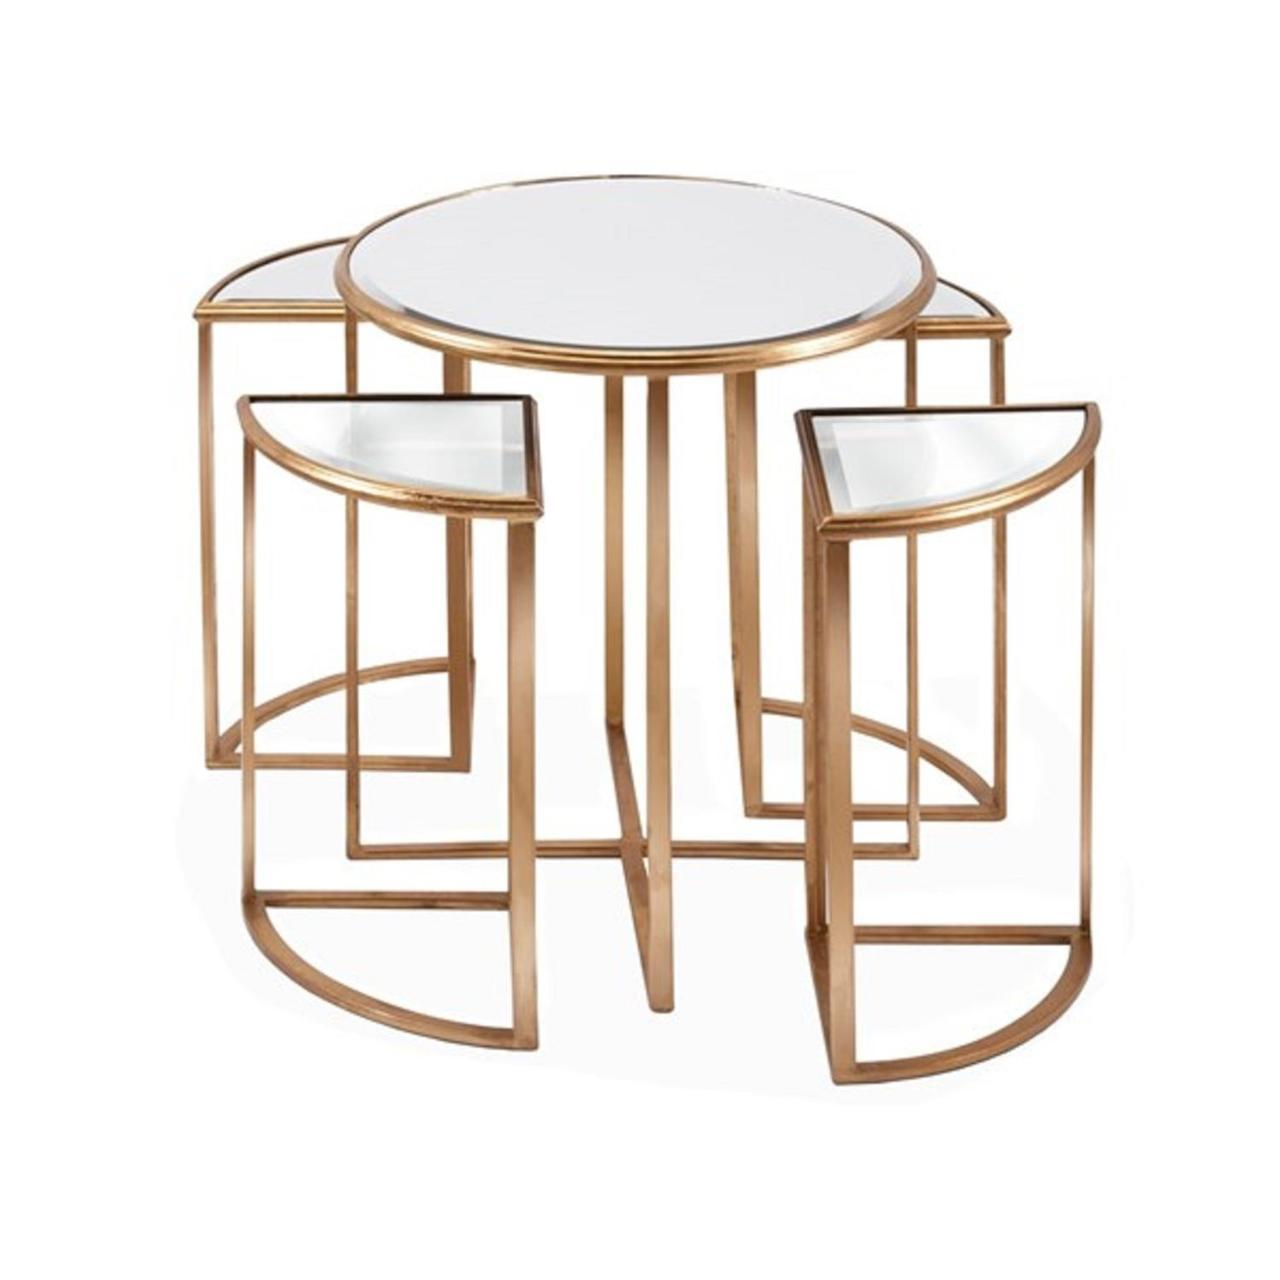 set gold trim decorative metal mirrored nesting accent tables table ashley furniture glass coffee marble top with storage mid century lounge chair dining linens pedestal lamp